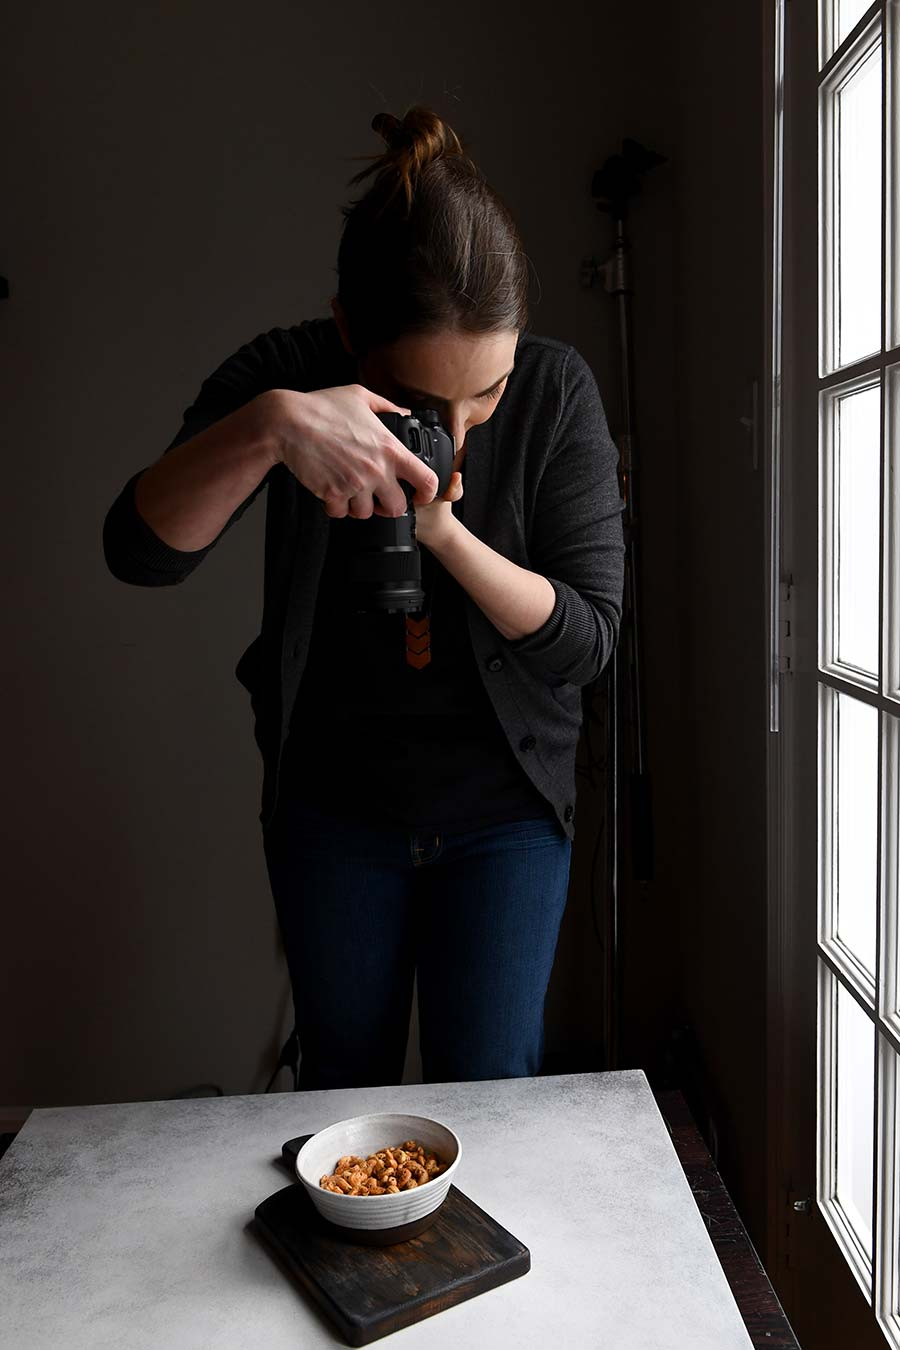 Jennifer Farley, creator of Savory Simple, photographing in her home studio.